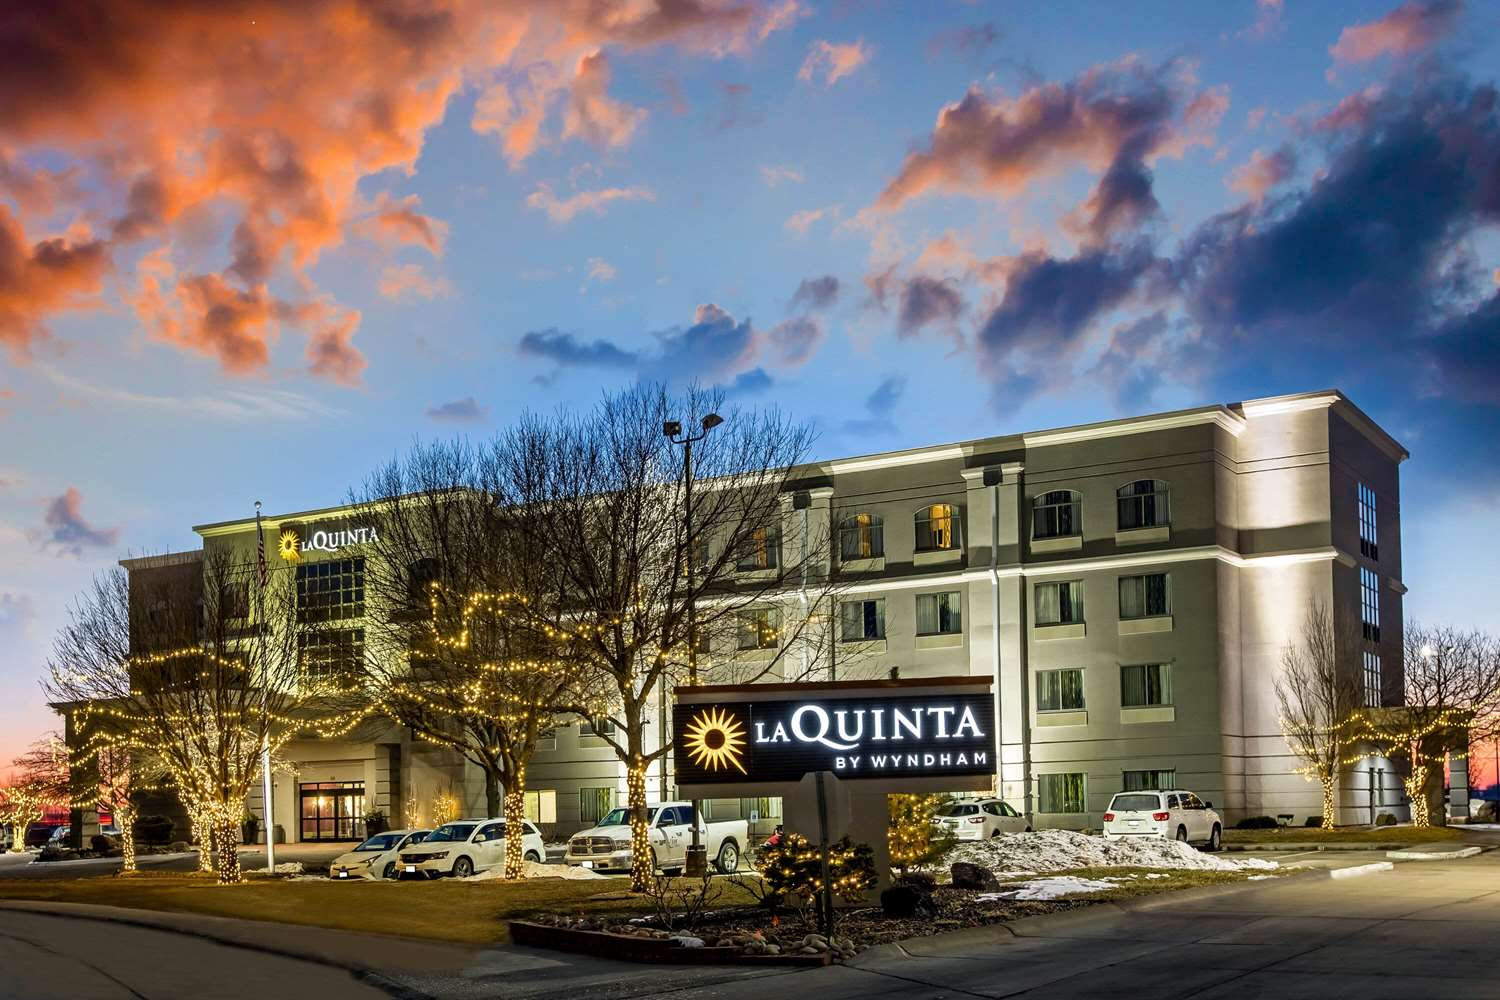 La Quinta Inn & Suites by Wyndham Kearney